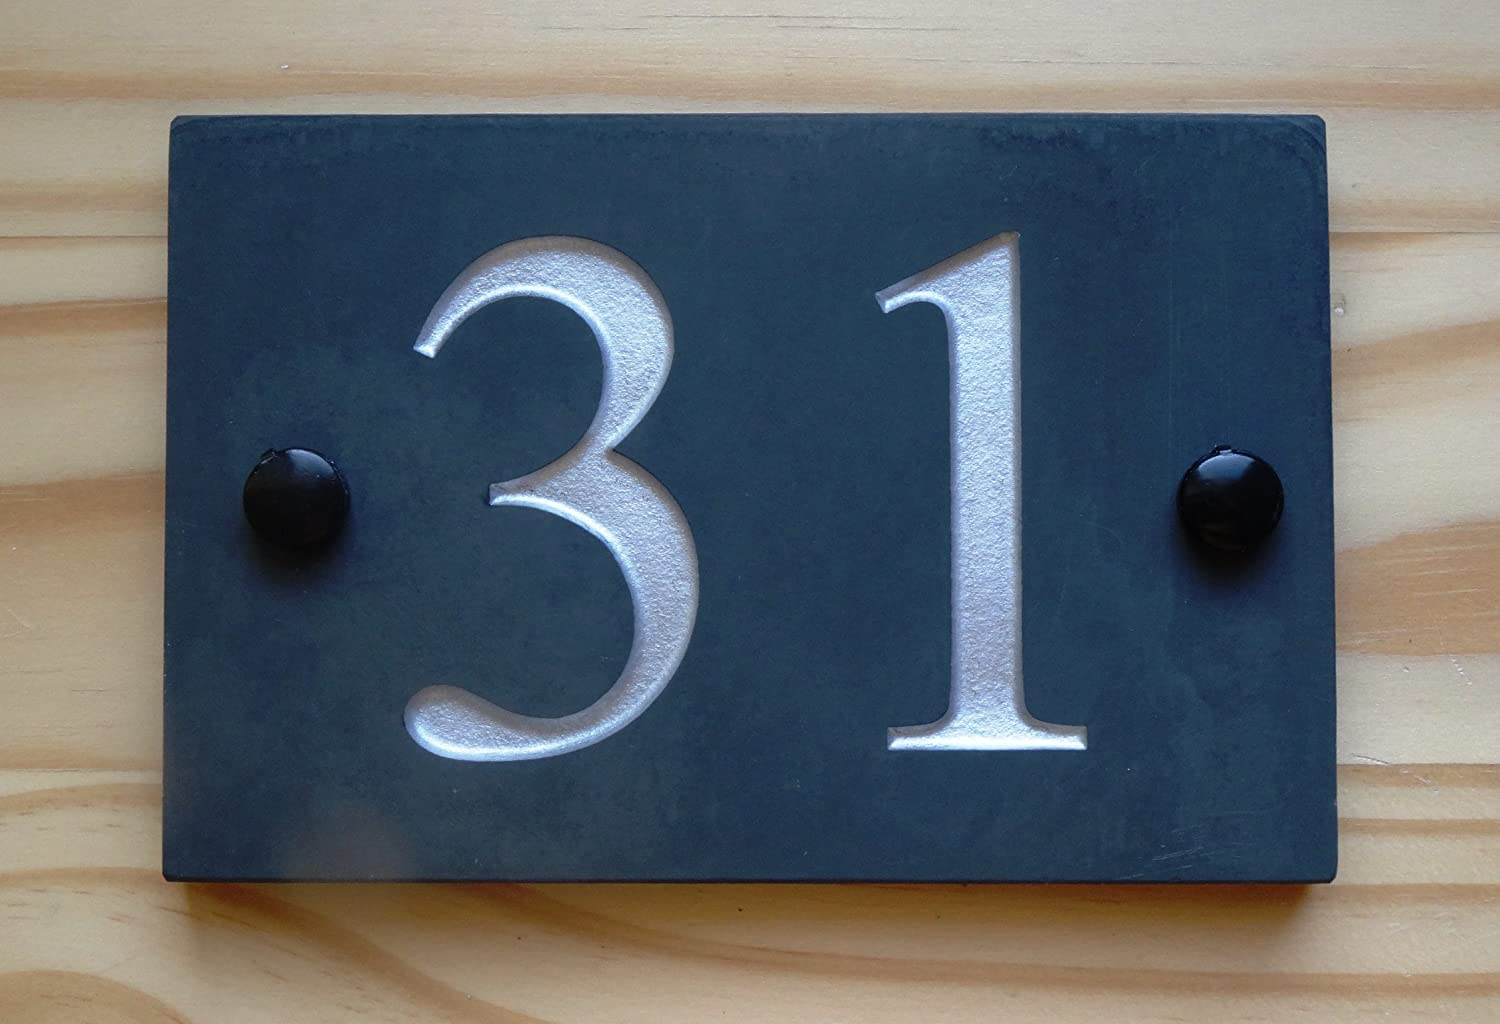 High Quality Natural Honed Slate Deep Engraved House Door Gate Number Sign Plaque 1-9999 (10 x15cm up to 2 digits only, Gold) ukgifts